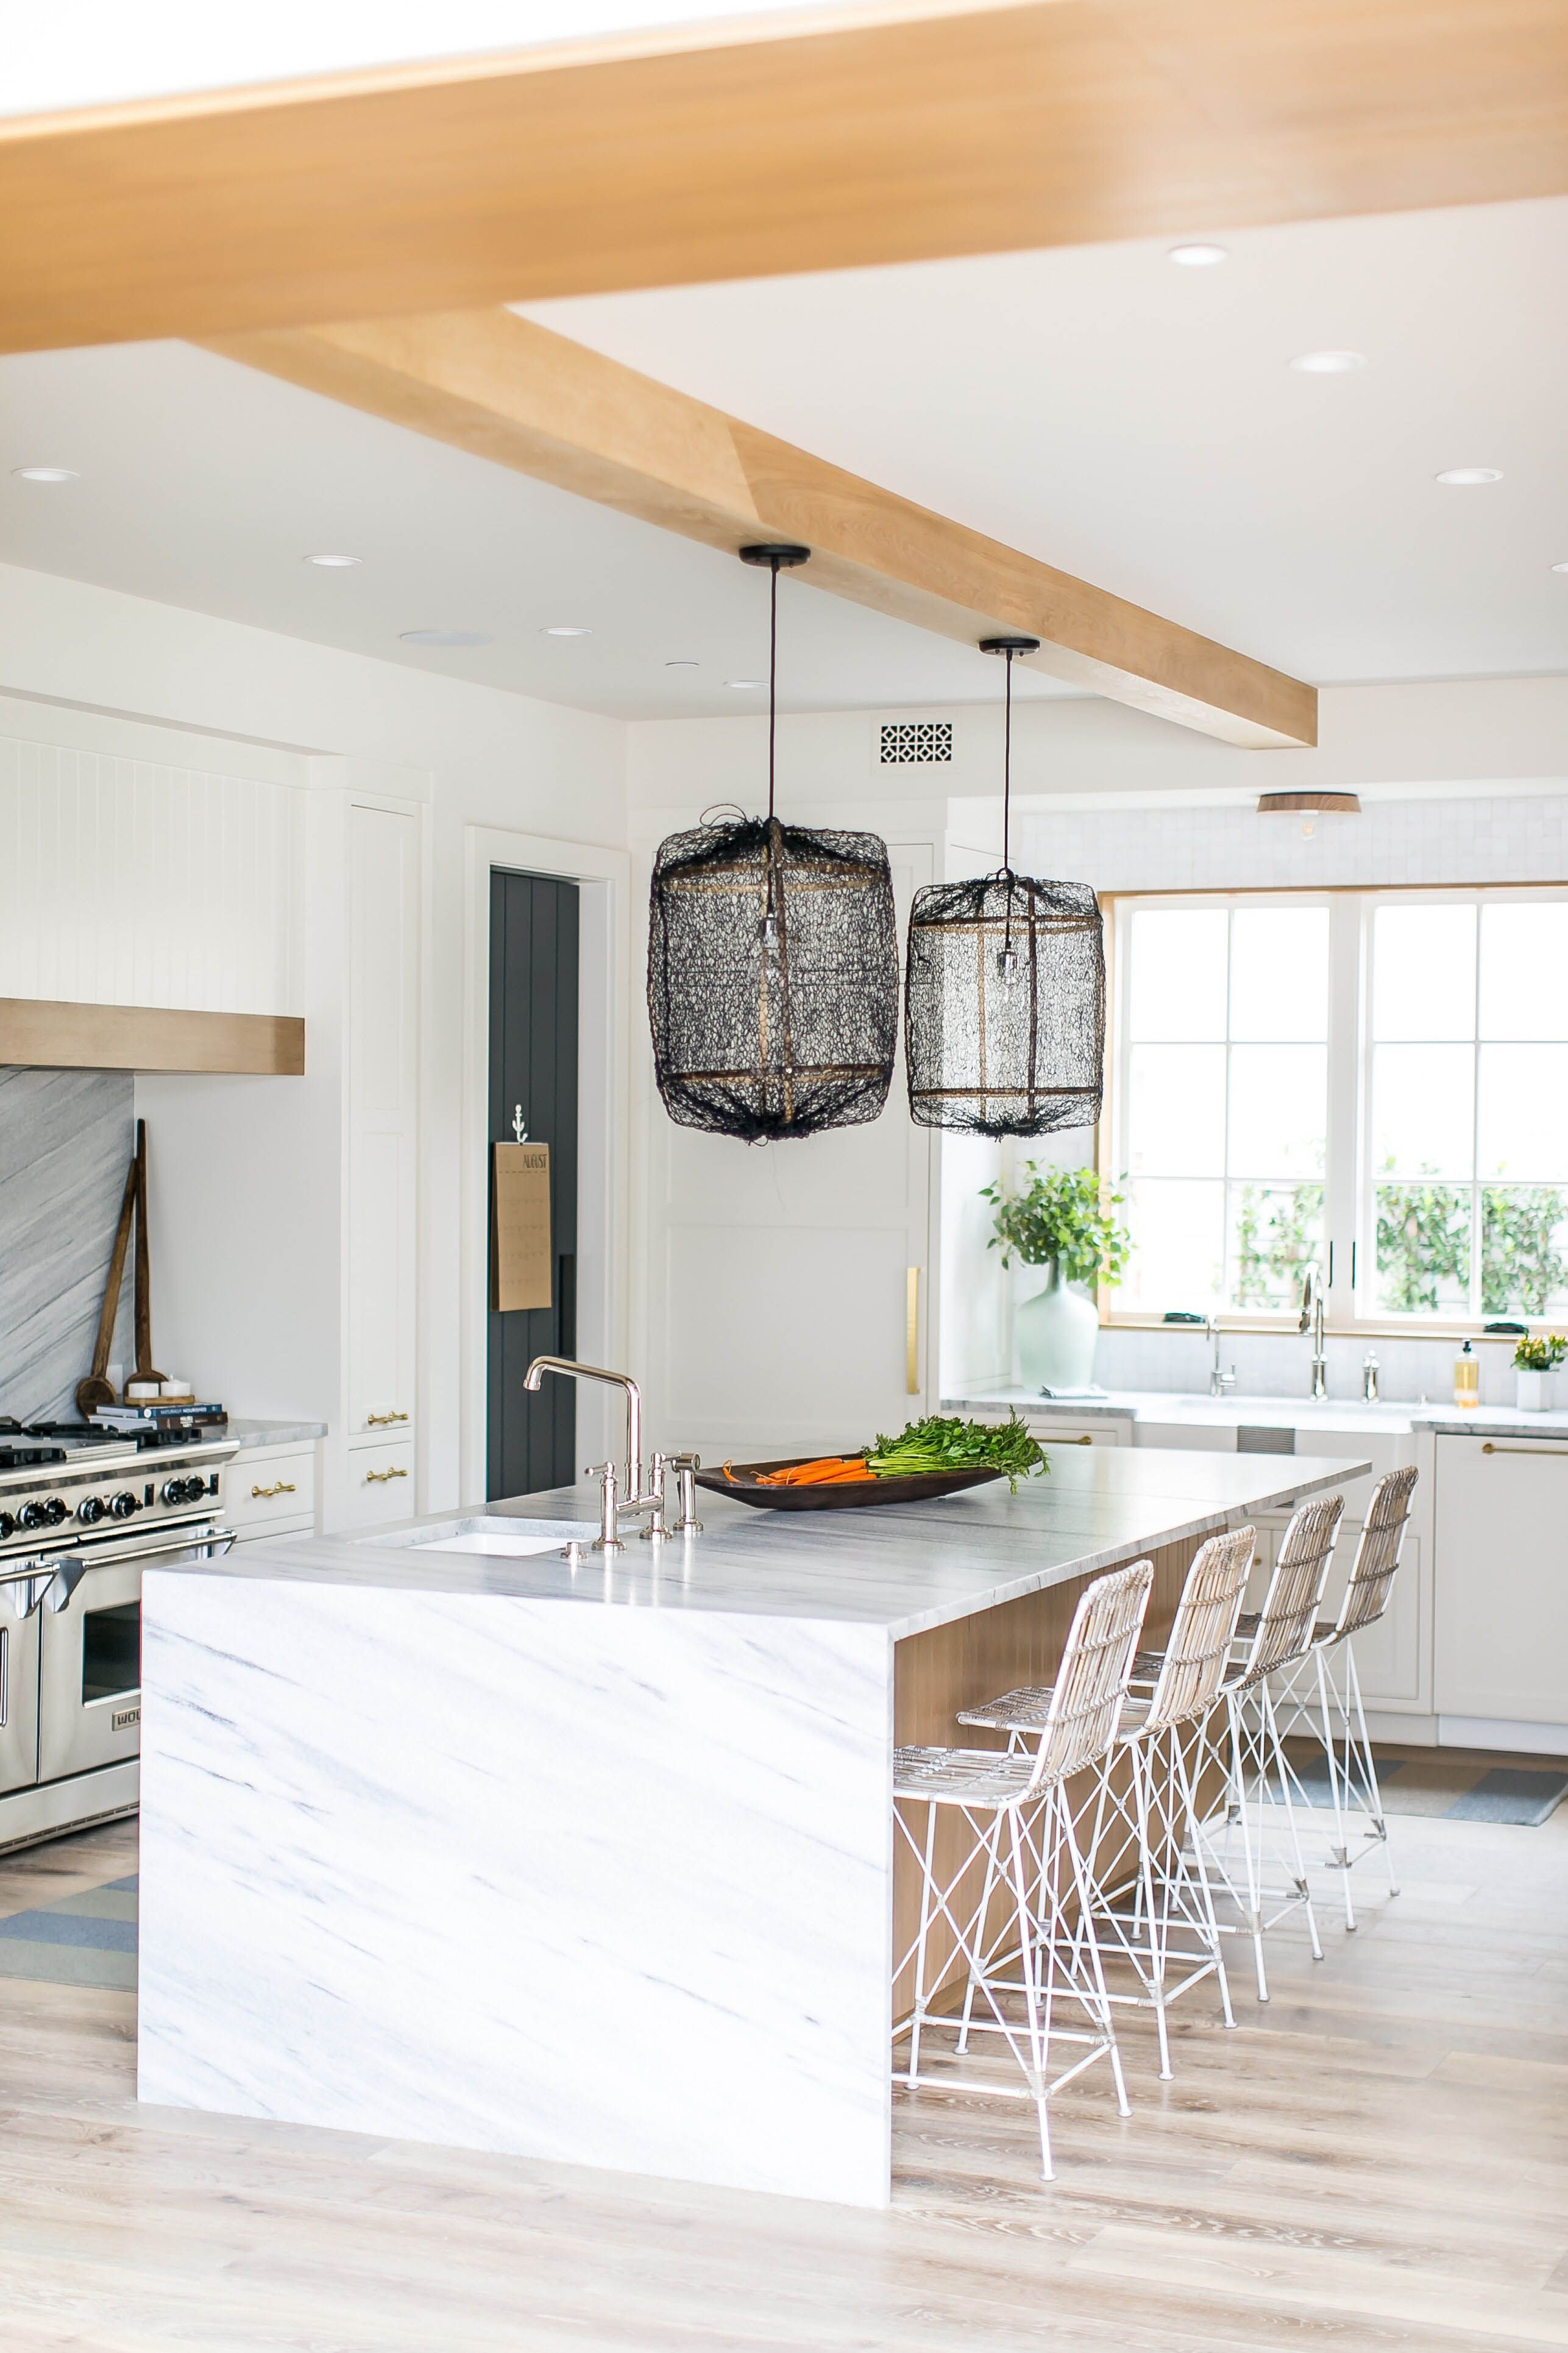 Natural Stone and Neutral Textures in Brooke Wagner's New Home | Rue on cement kitchen ideas, cork kitchen ideas, furniture kitchen ideas, hardwood kitchen ideas, windows kitchen ideas, vinyl kitchen ideas, natural stone kitchen islands, floor kitchen ideas, terra cotta kitchen ideas, mosaic tile kitchen ideas, countertops kitchen ideas, natural stone kitchen sink, porcelain tile kitchen ideas, soapstone kitchen ideas, lighting kitchen ideas, cabinet hardware kitchen ideas, quartz kitchen ideas, steel kitchen ideas, bronze kitchen ideas, natural stone kitchen floor,